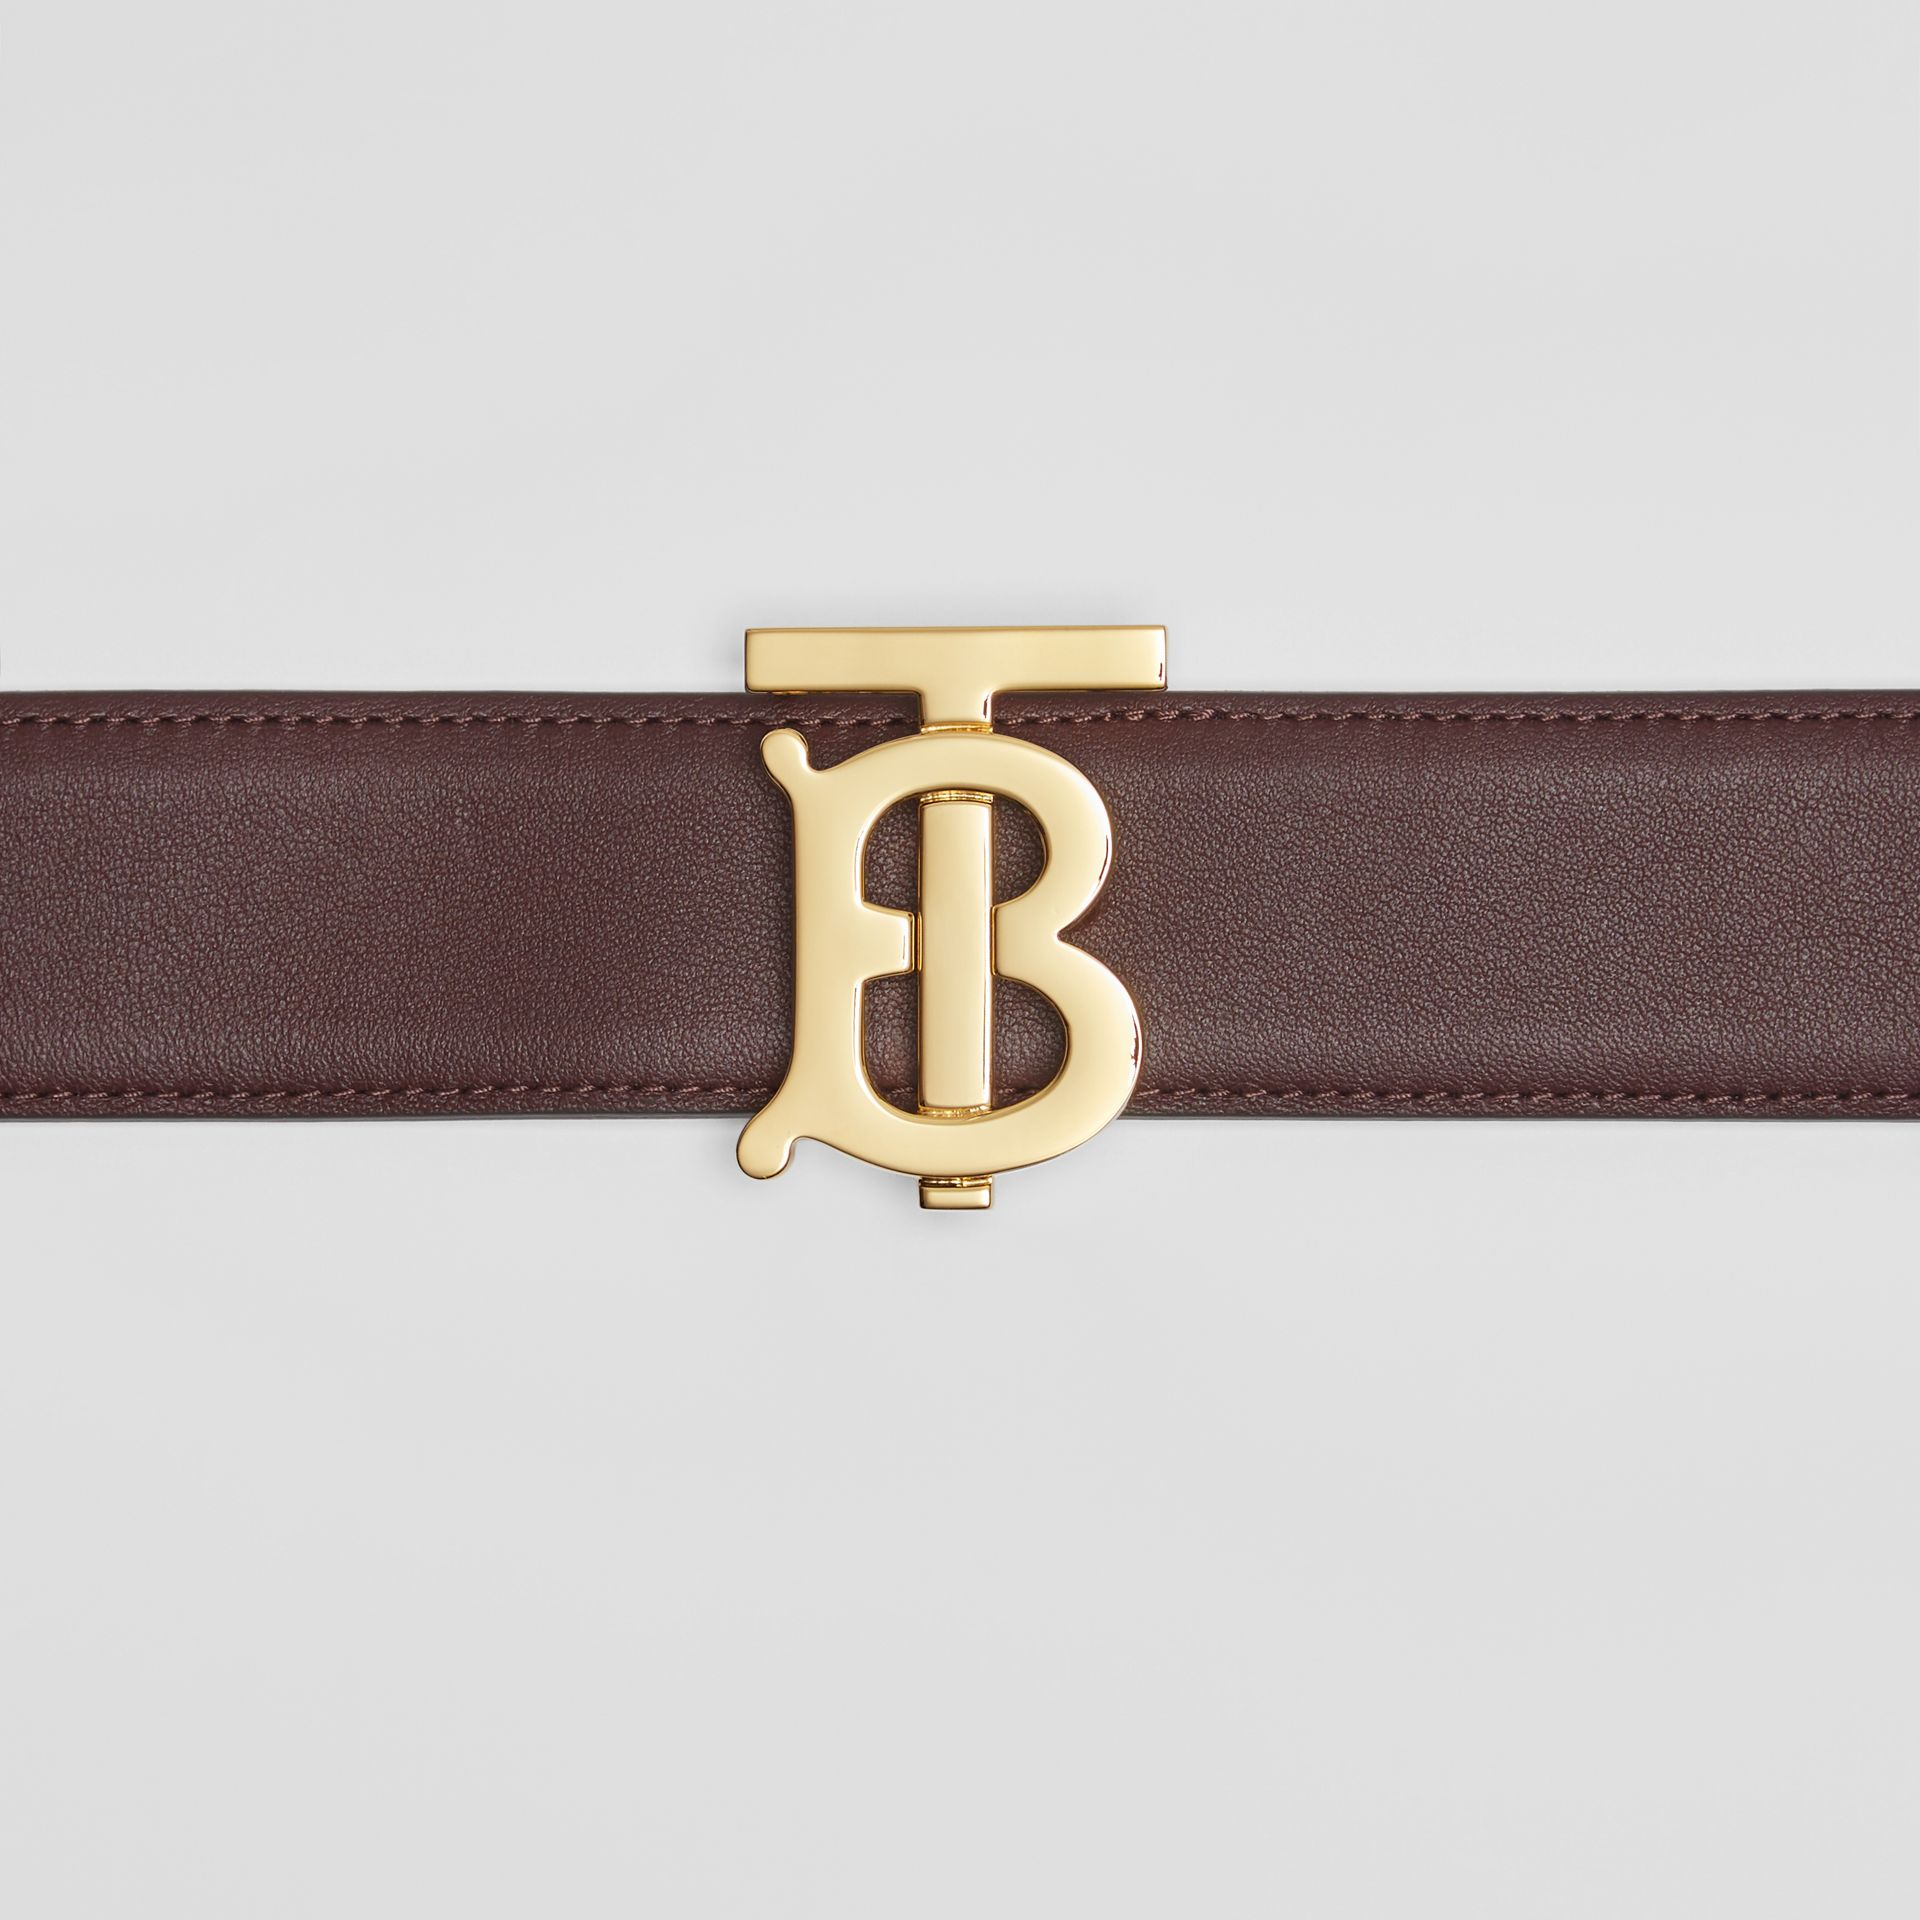 Ceinture en cuir réversible Monogram (Oxblood/beige Rose) - Femme | Burberry Canada - photo de la galerie 1